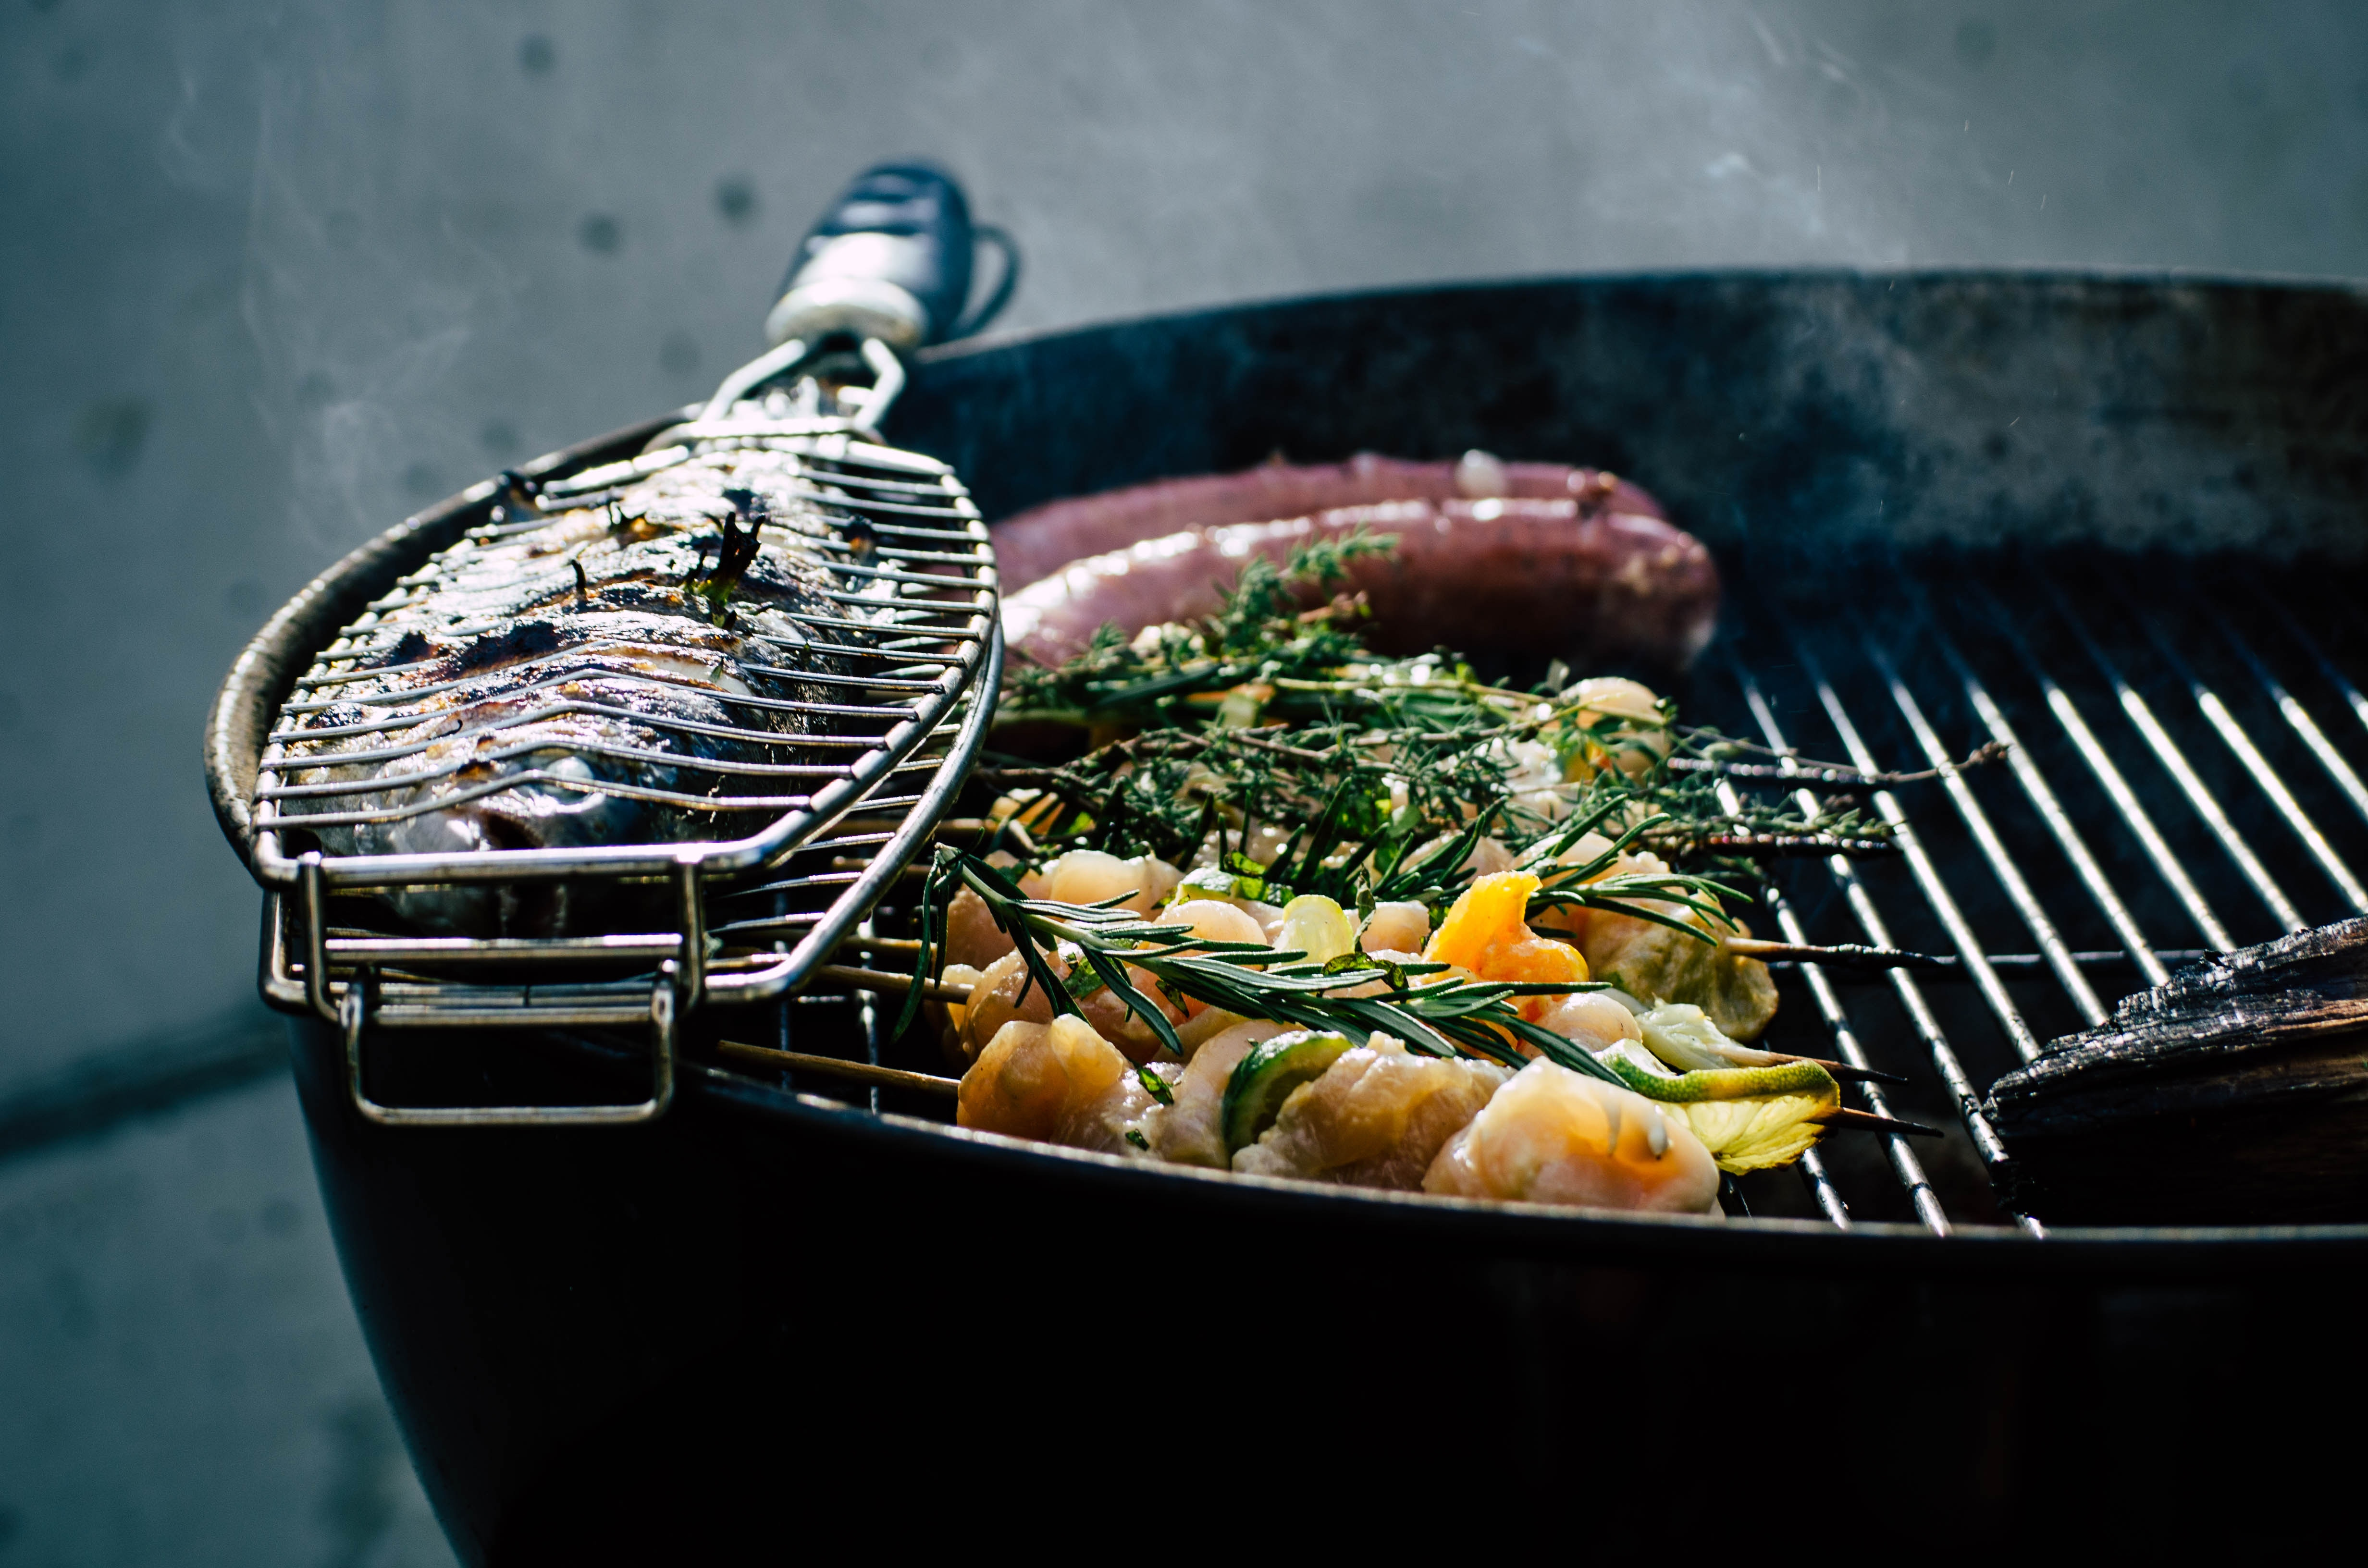 Charcoal Grills for the Classic Experience and Authentic Flavor